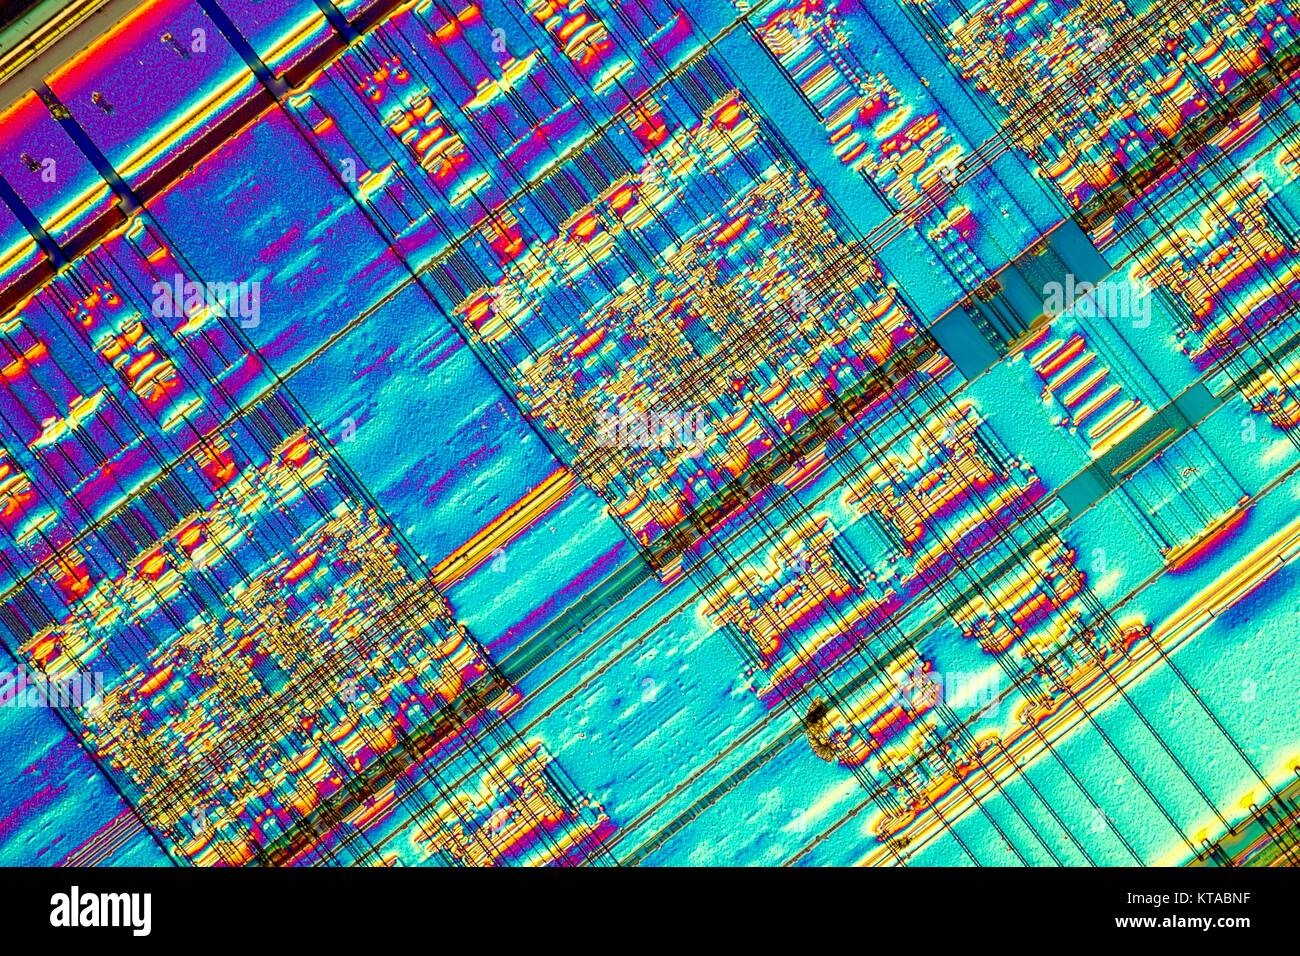 memory chip What is a memory chip a semiconductor memory chip is an electronic device for data storage which is implemented on a semiconductor integrated circuit.